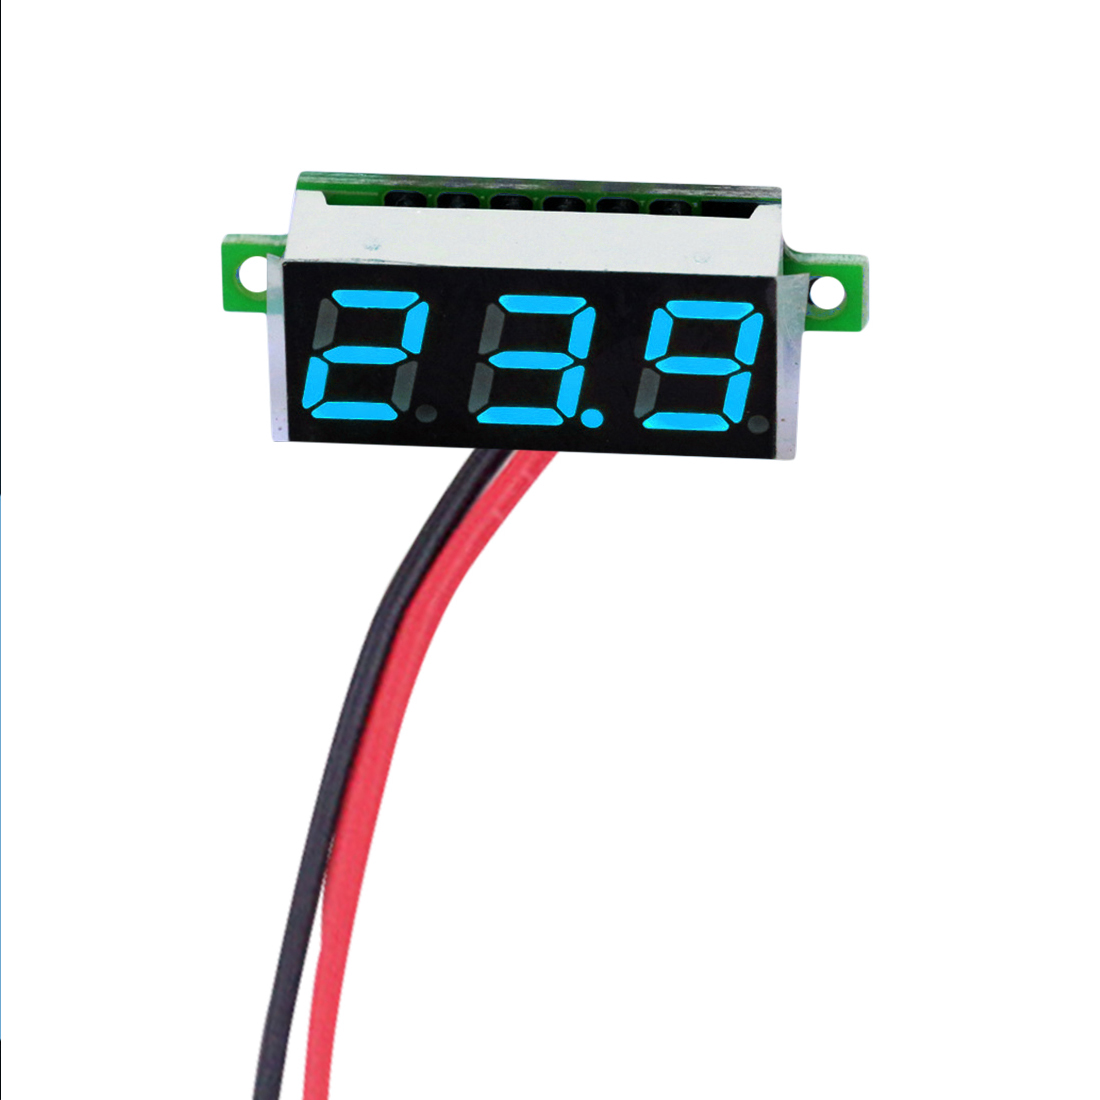 How To Test Car Fuse Box With Multimeter Hot 028 Inch 25v 30v Mini Digital Voltmeter Voltage Tester Meter Led Screen Electronic Parts Accessories